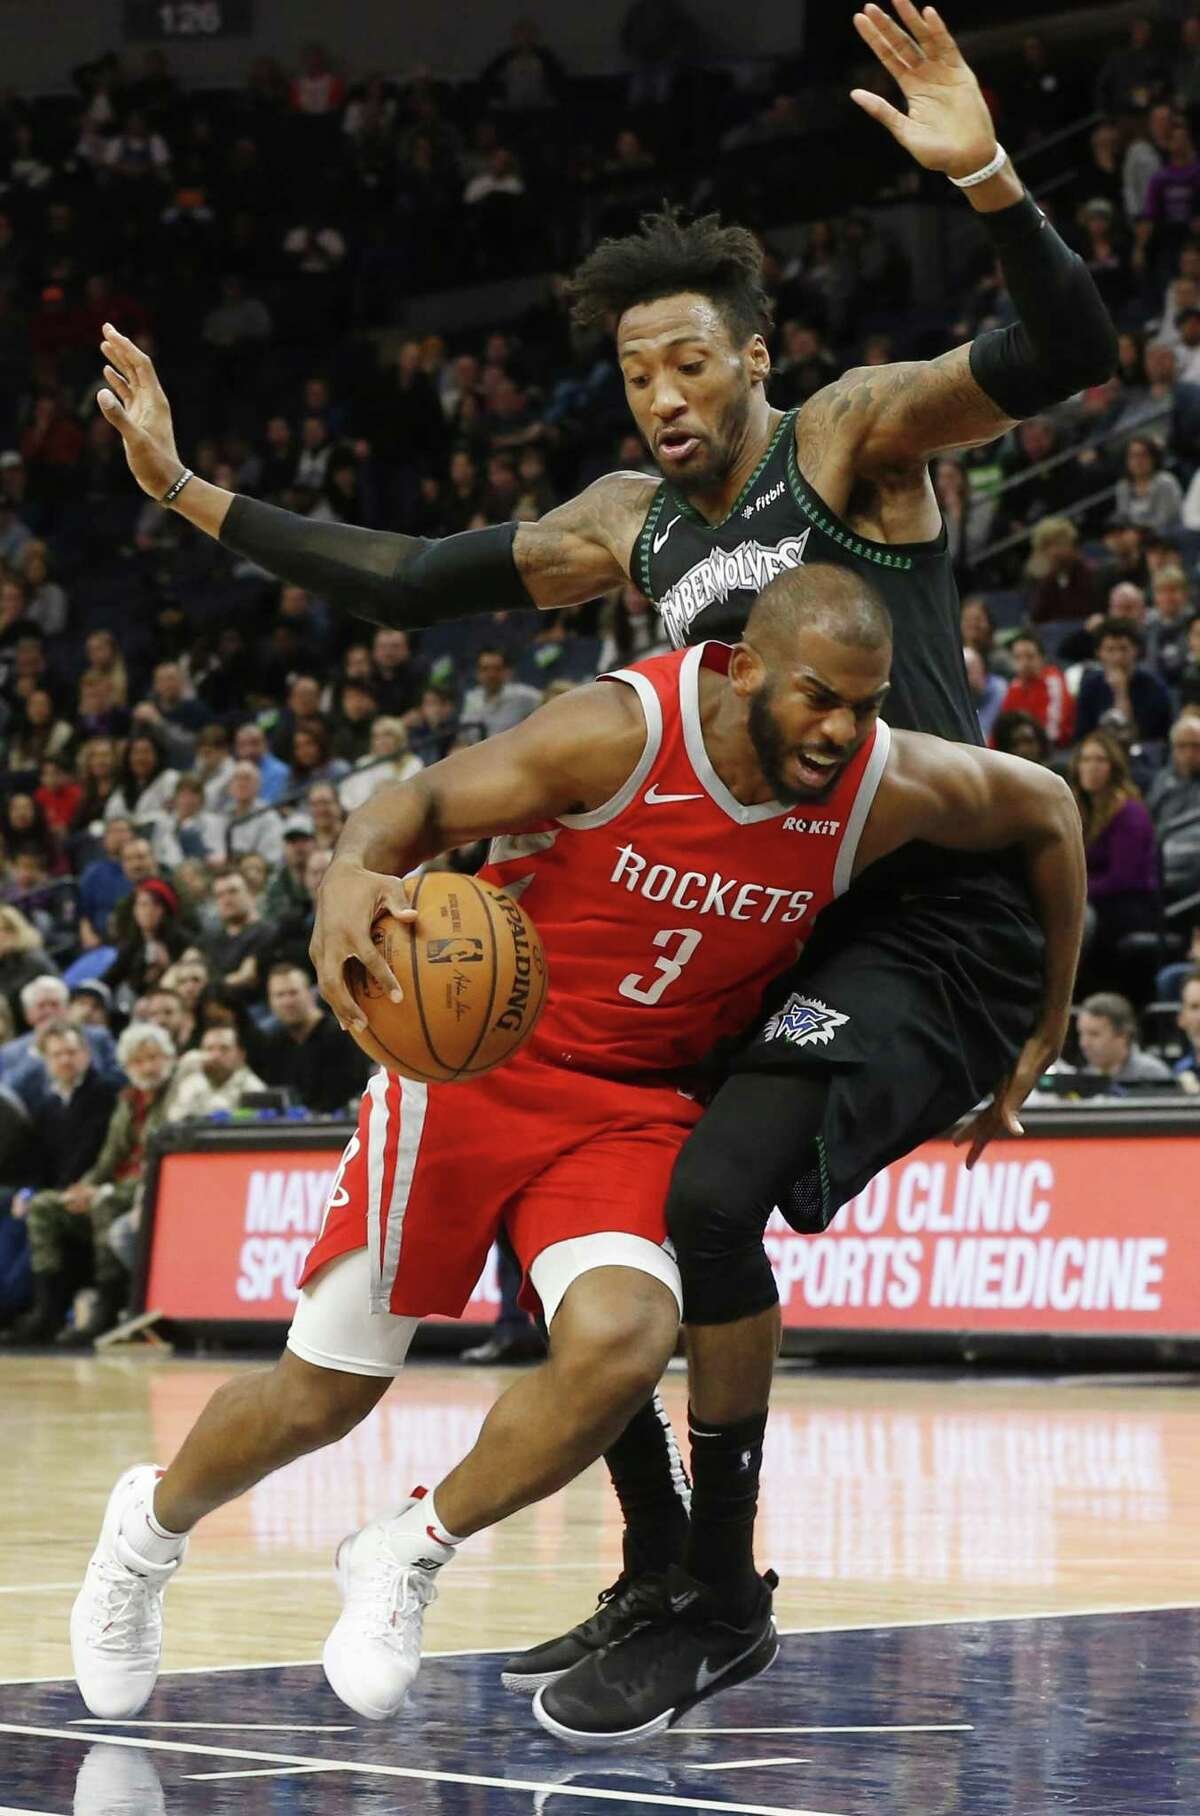 Rockets guard Chris Paul, here driving past the Timberwolves' Robert Covington on Monday, says he pushes the pace whenever possible.